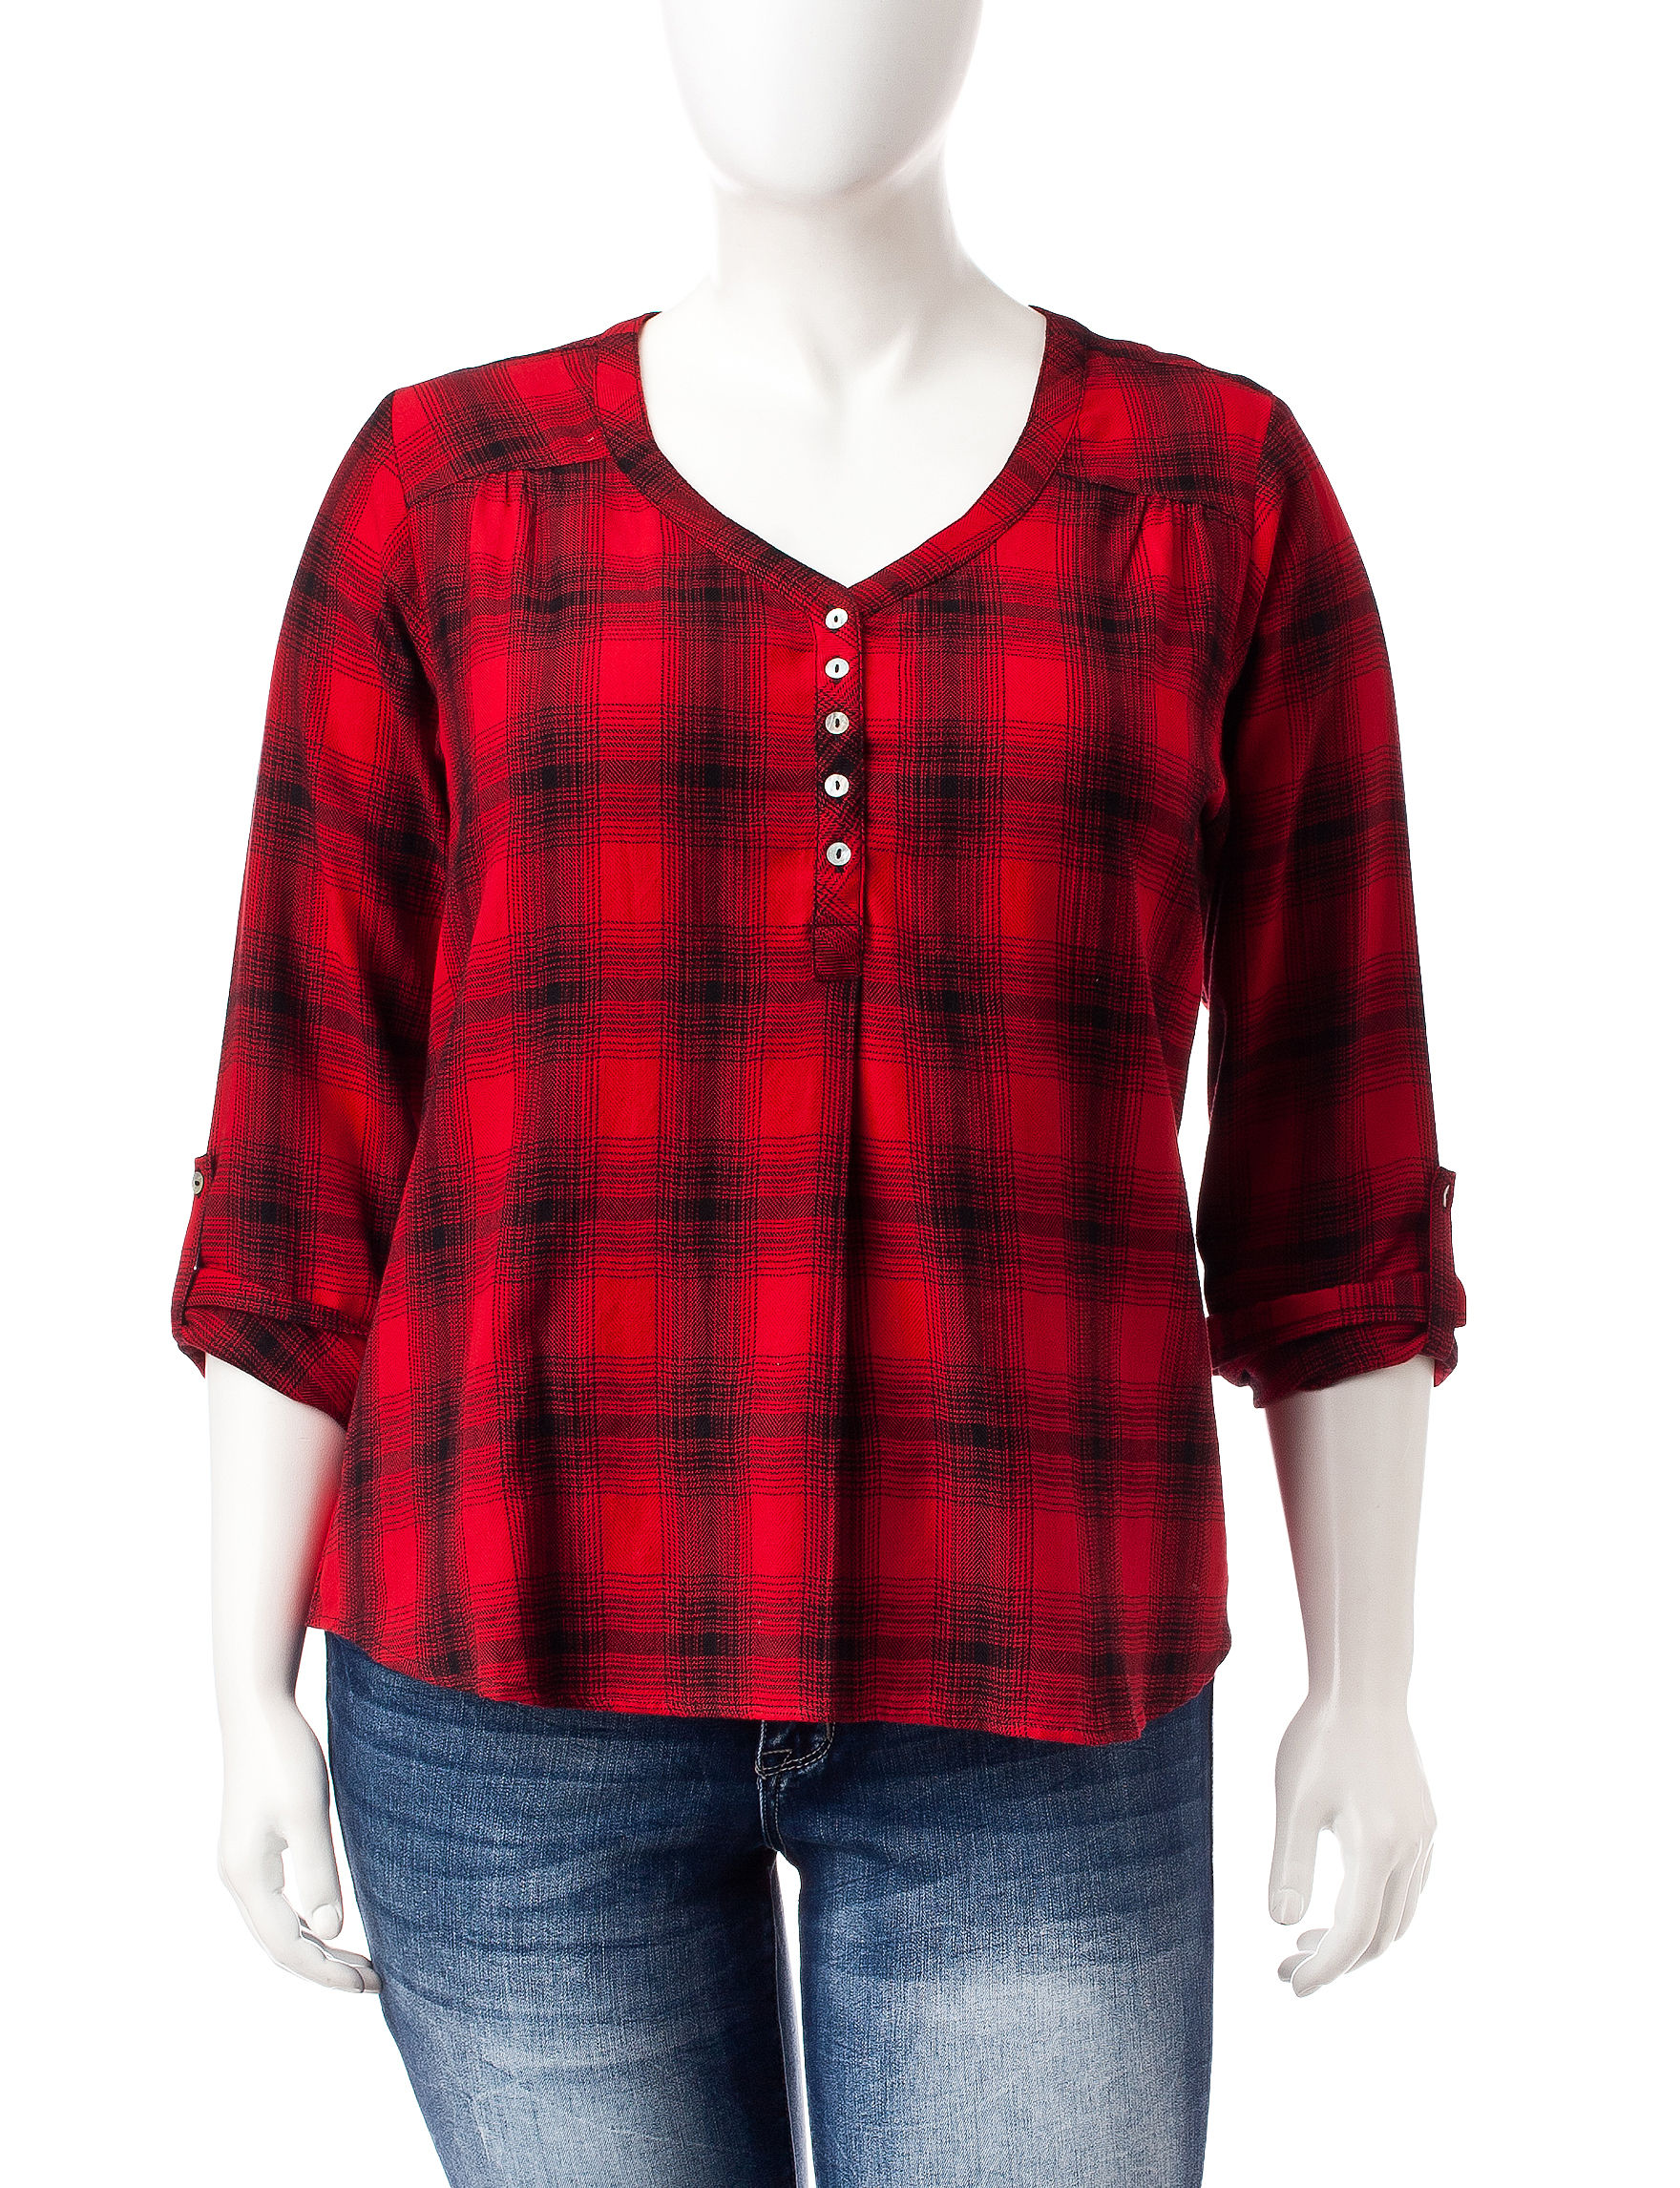 Rebecca Malone Red / Black Shirts & Blouses